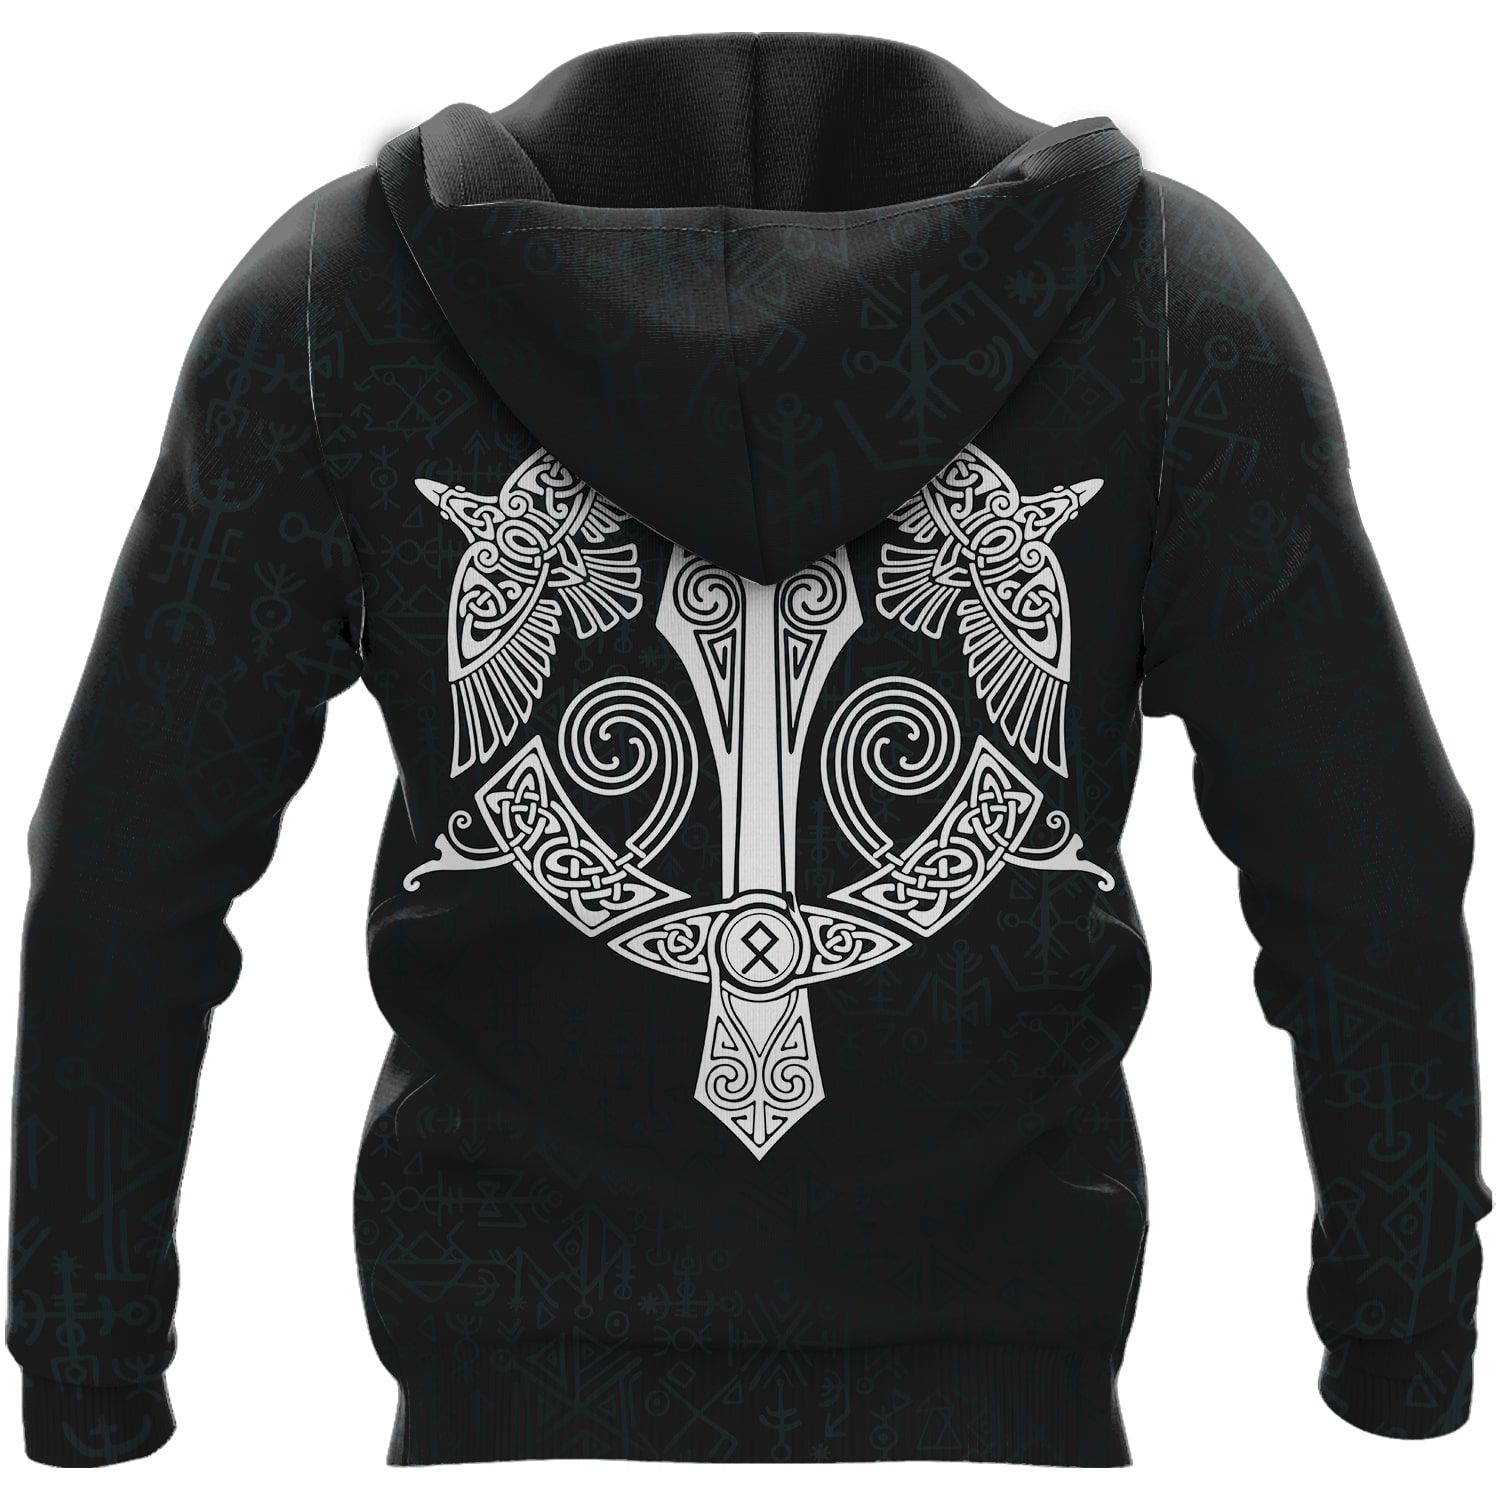 Odin Raven Till Valhalla 3D Viking Hoodie and T-shirt